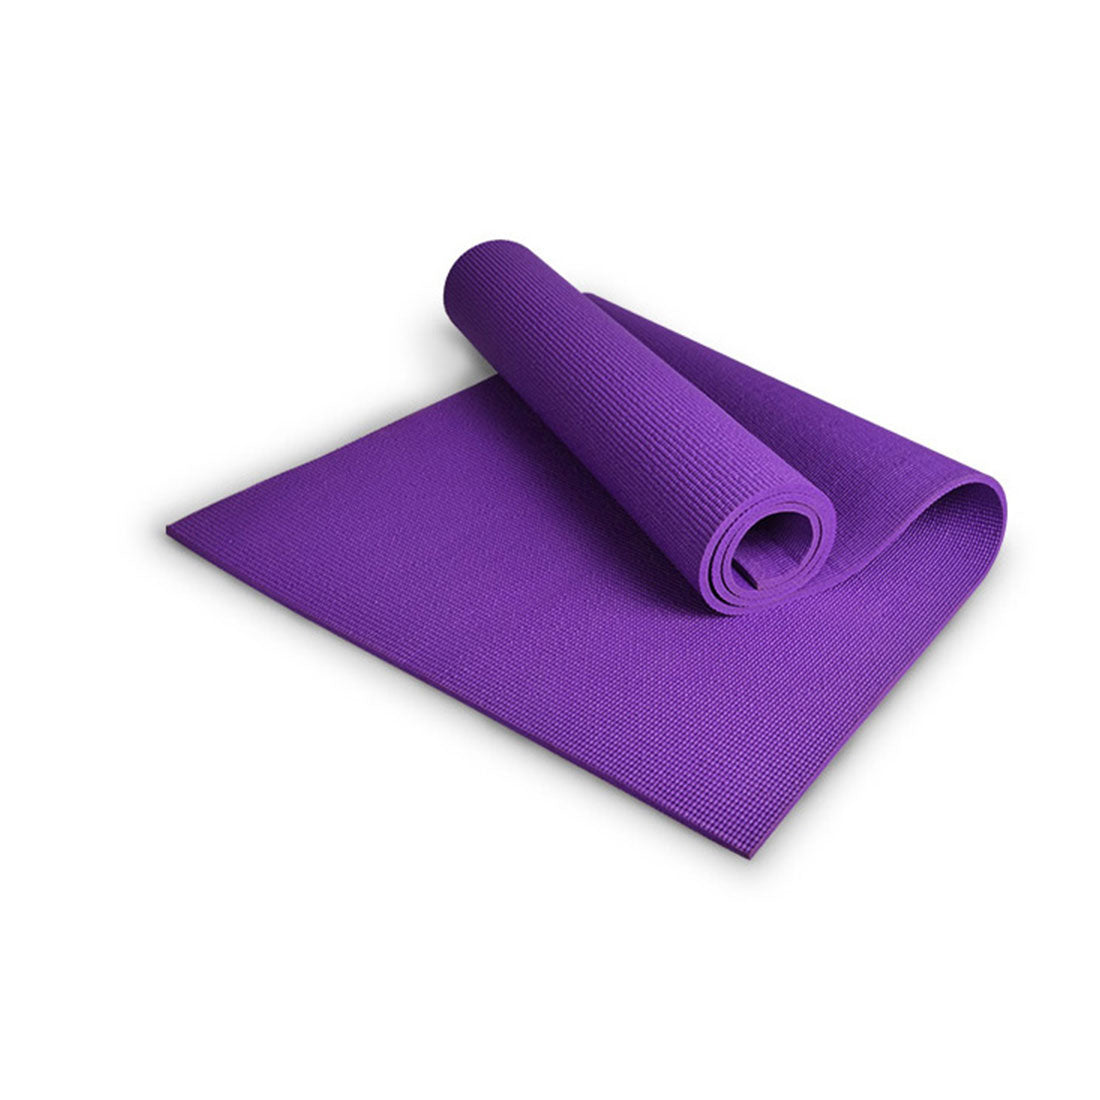 Extra Thick 6mm PVC Yoga Gym Pilate Mat Fitness Non Slip Exercise Board - purple